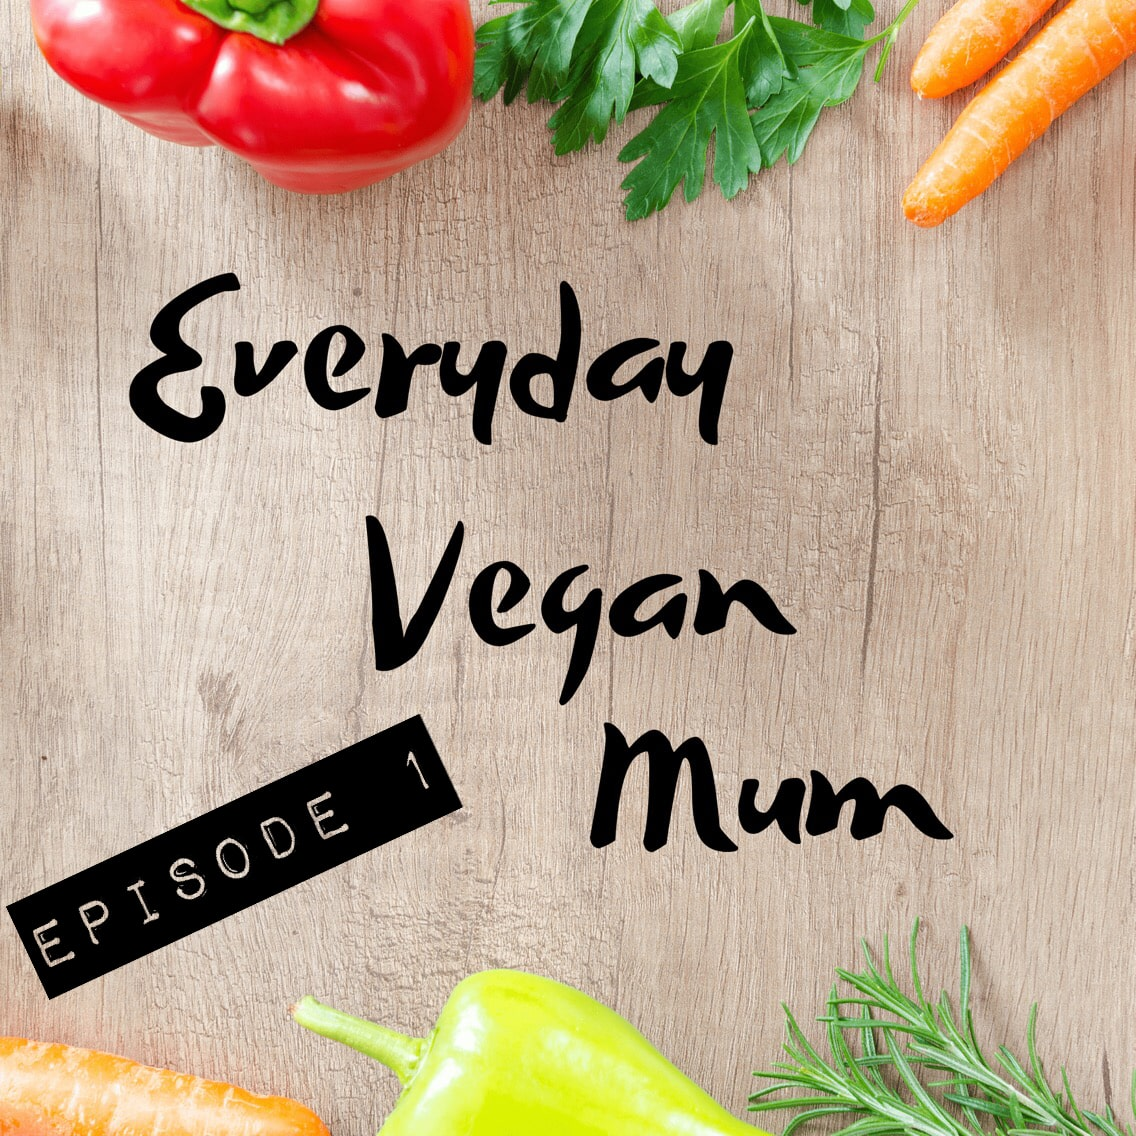 The Everyday Vegan Mum Podcast Episode 1 – Welcome to the show!